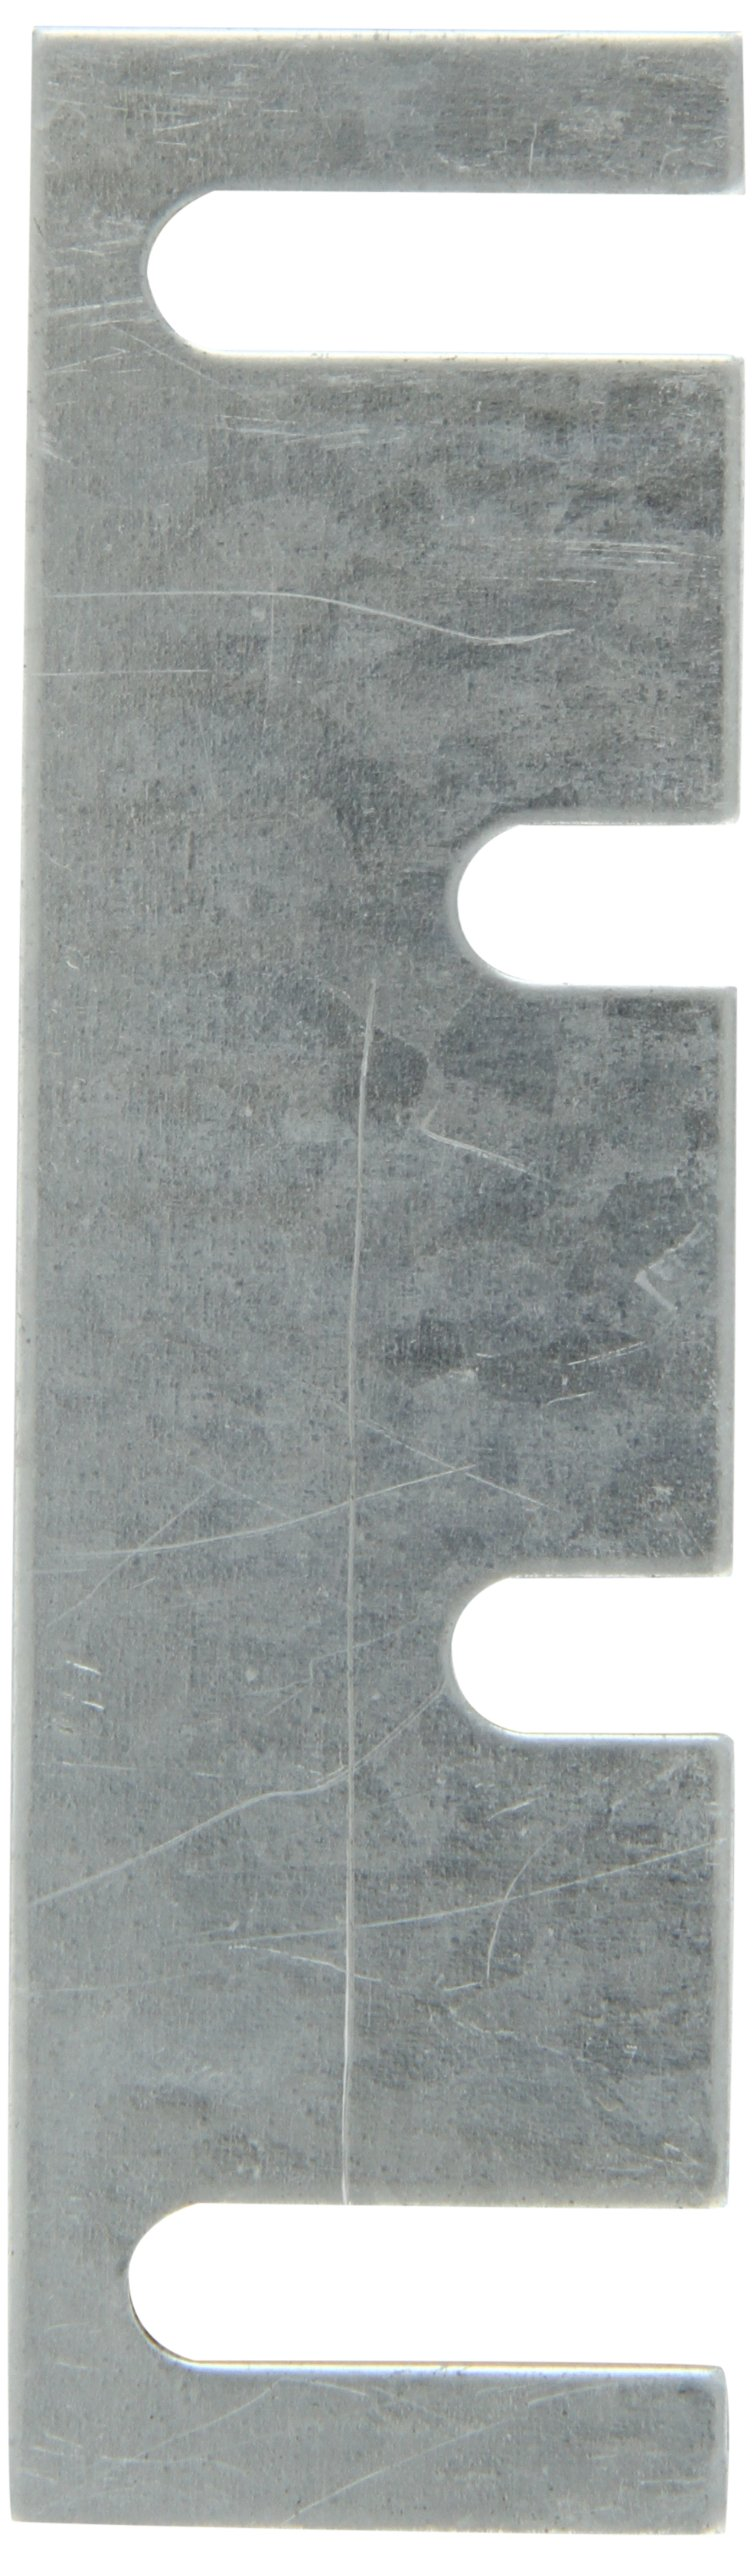 """Rockwood HS54 Steel Hinge Shim, 1-7/16"""" Width x 5"""" Height x 0.065"""" Thick, Galvanized Coat Finish (Pack of 50)"""